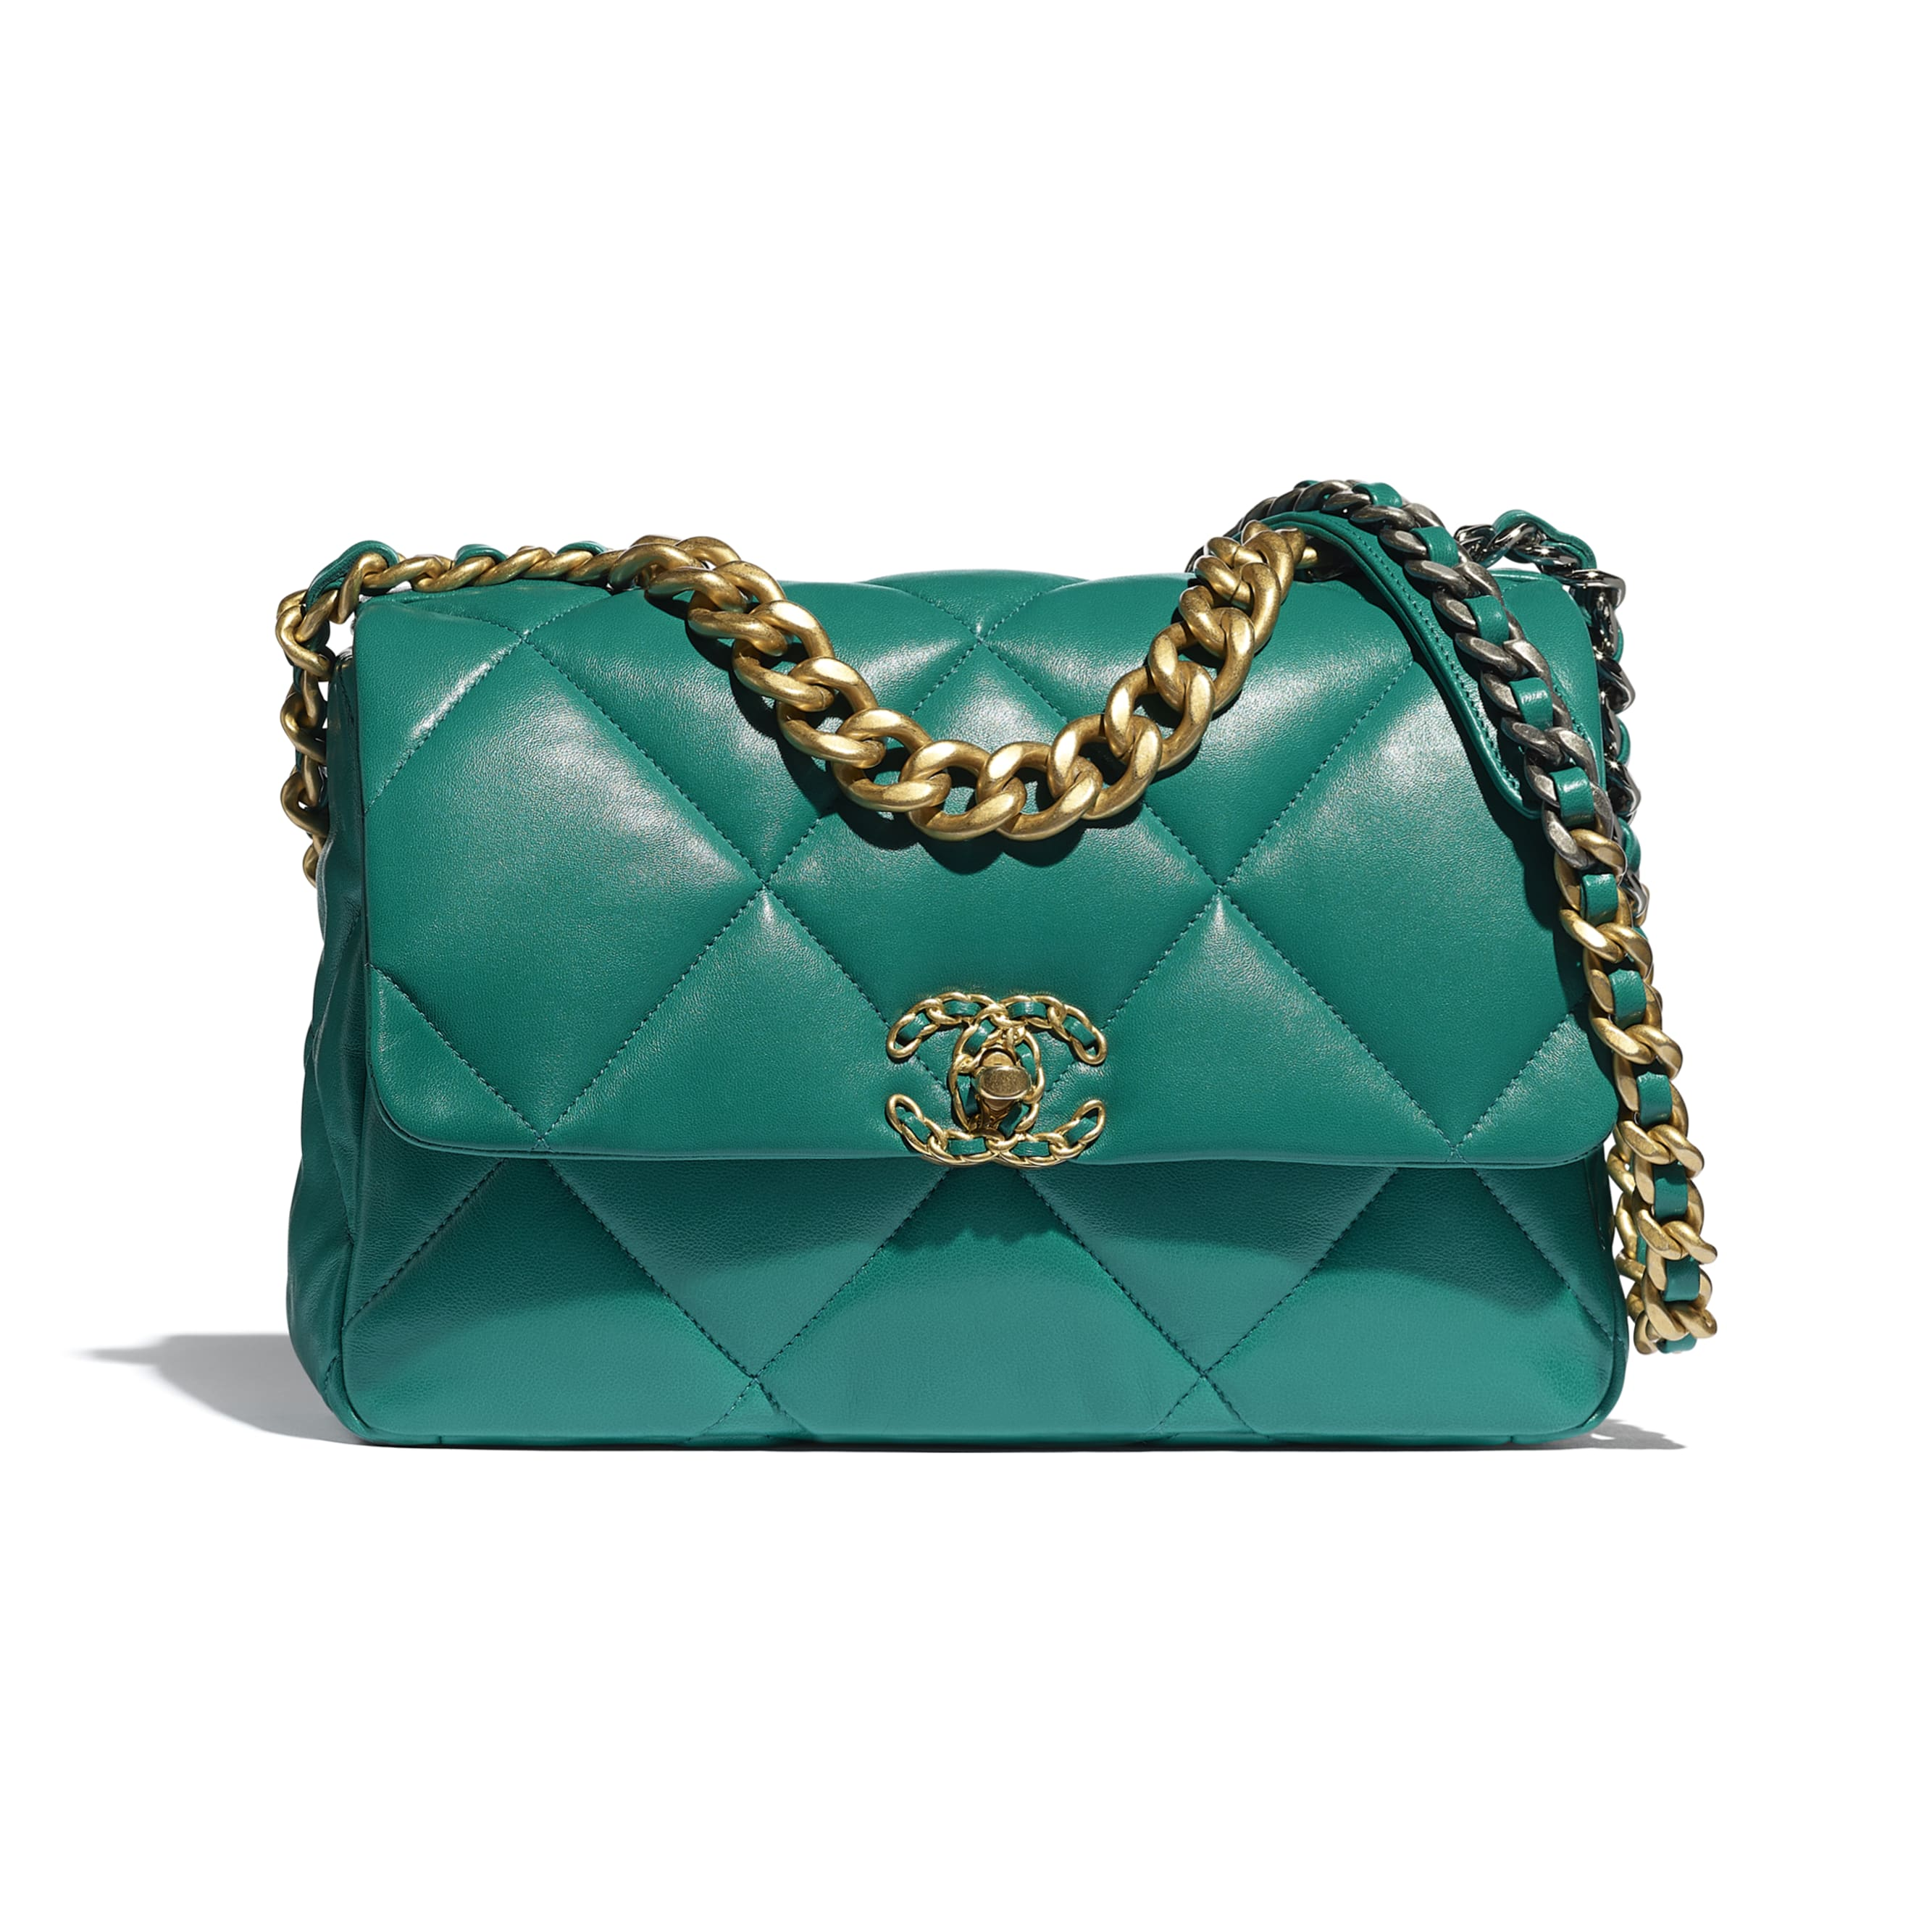 CHANEL 19 Large Flap Bag - Green - Lambskin, Gold-Tone, Silver-Tone & Ruthenium-Finish Metal - CHANEL - Default view - see standard sized version